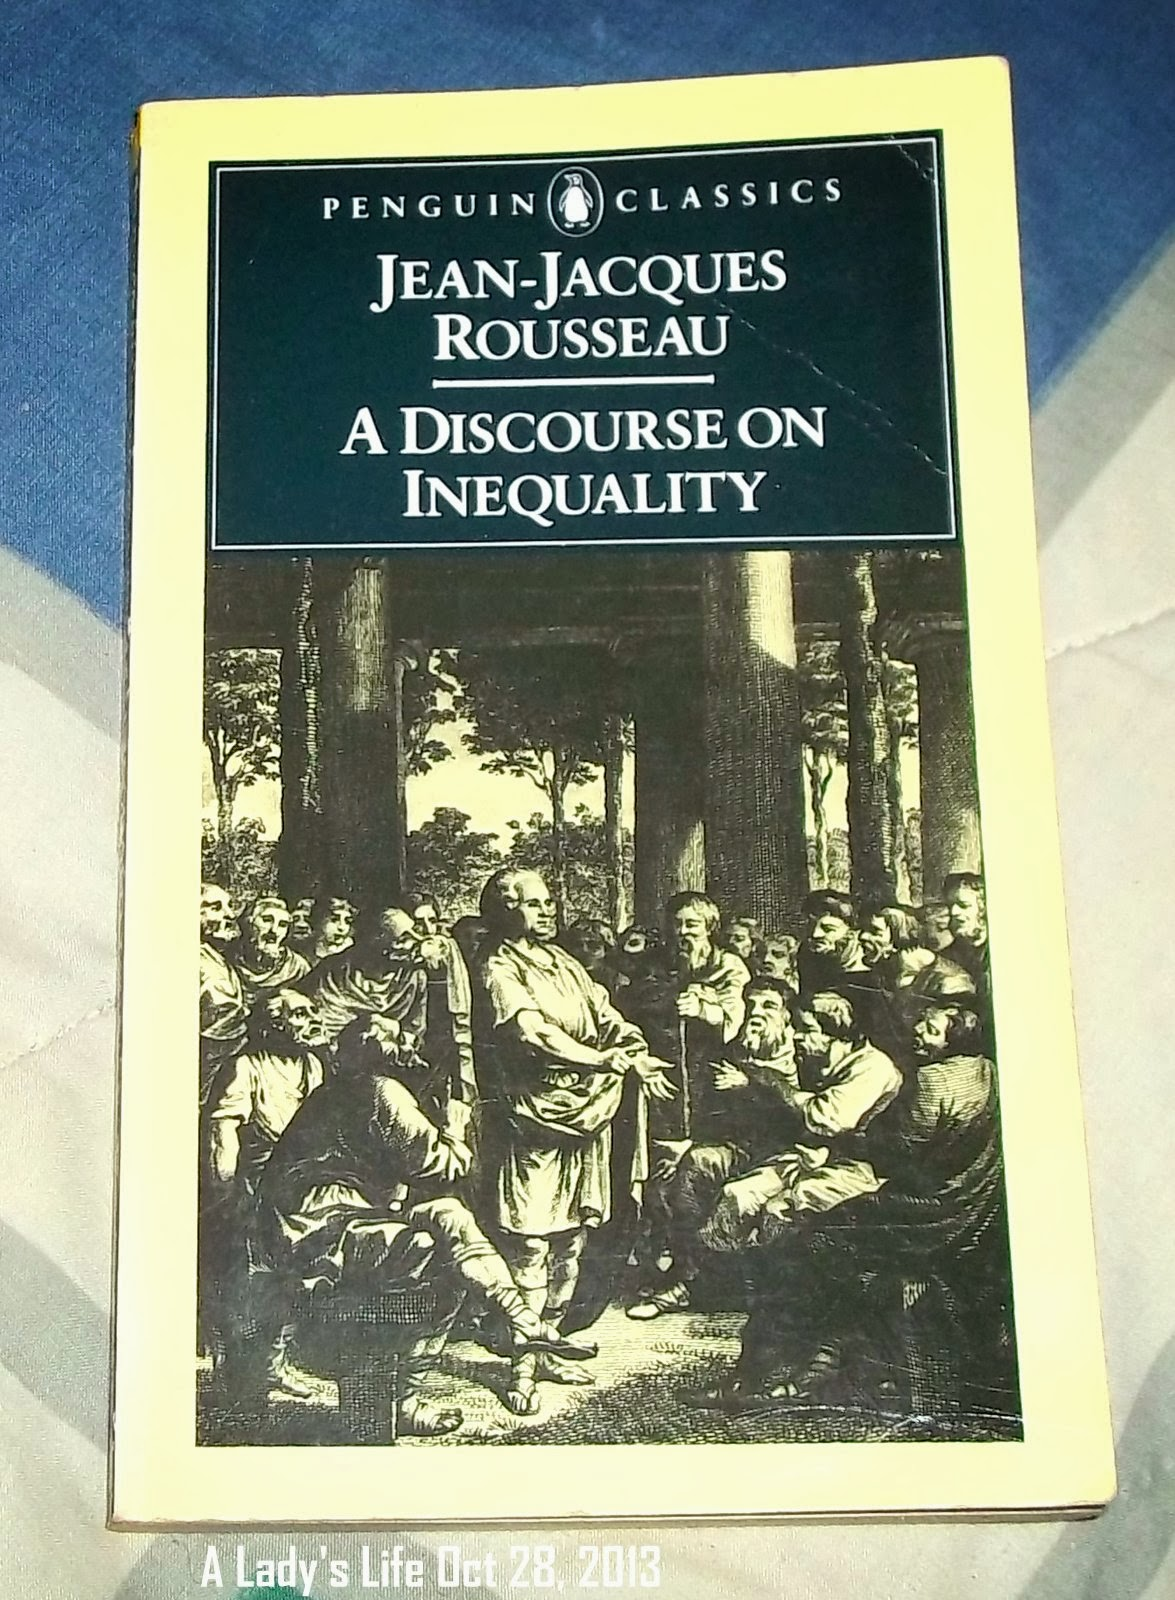 a discourse on inequality This detailed overview of jean-jacques rousseau's discourse on the origin and the foundations of inequality is an example of some of the minds-exclusive content i will be producing in the future.